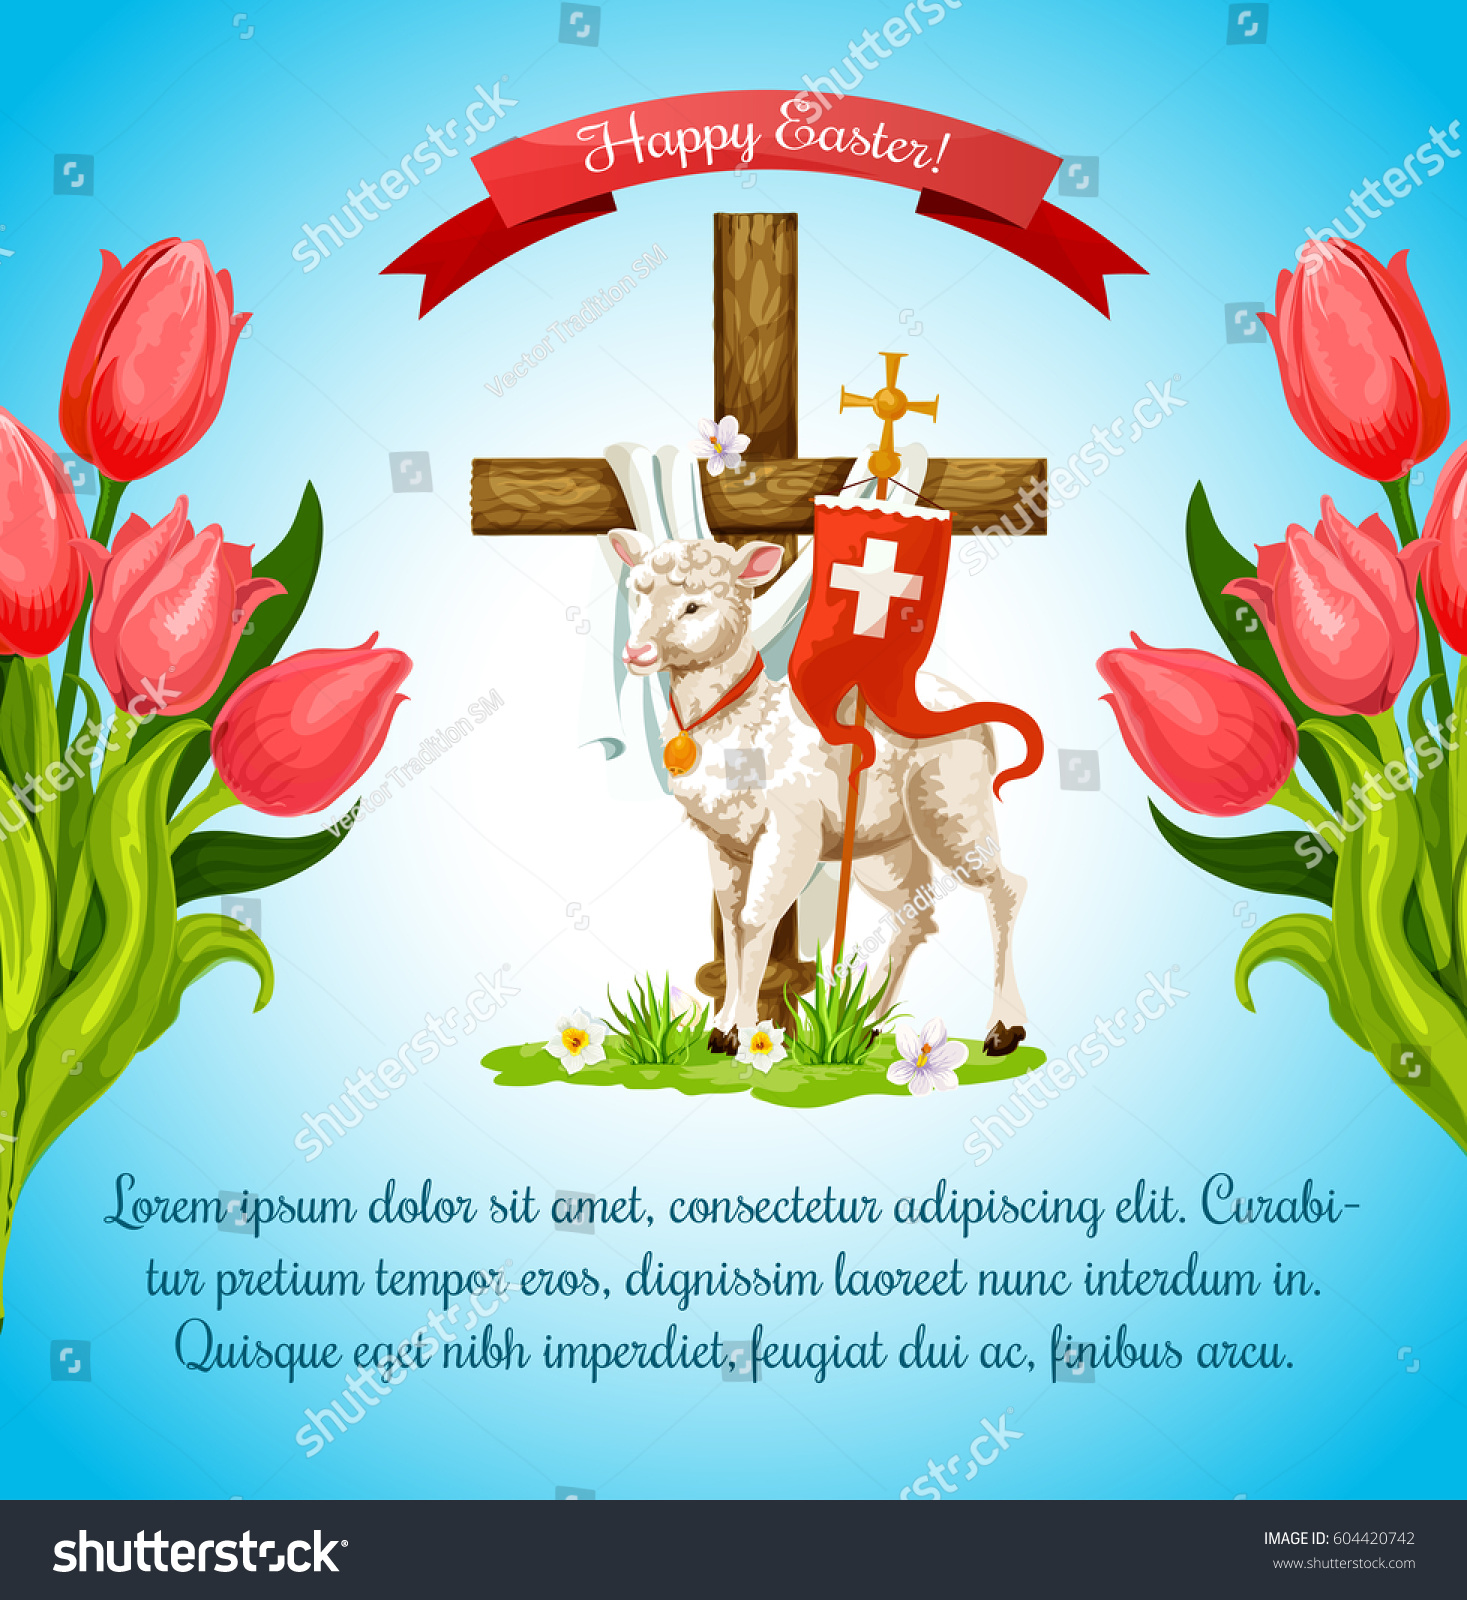 Easter Cross Cartoon Greeting Poster Template Stock Vector Royalty